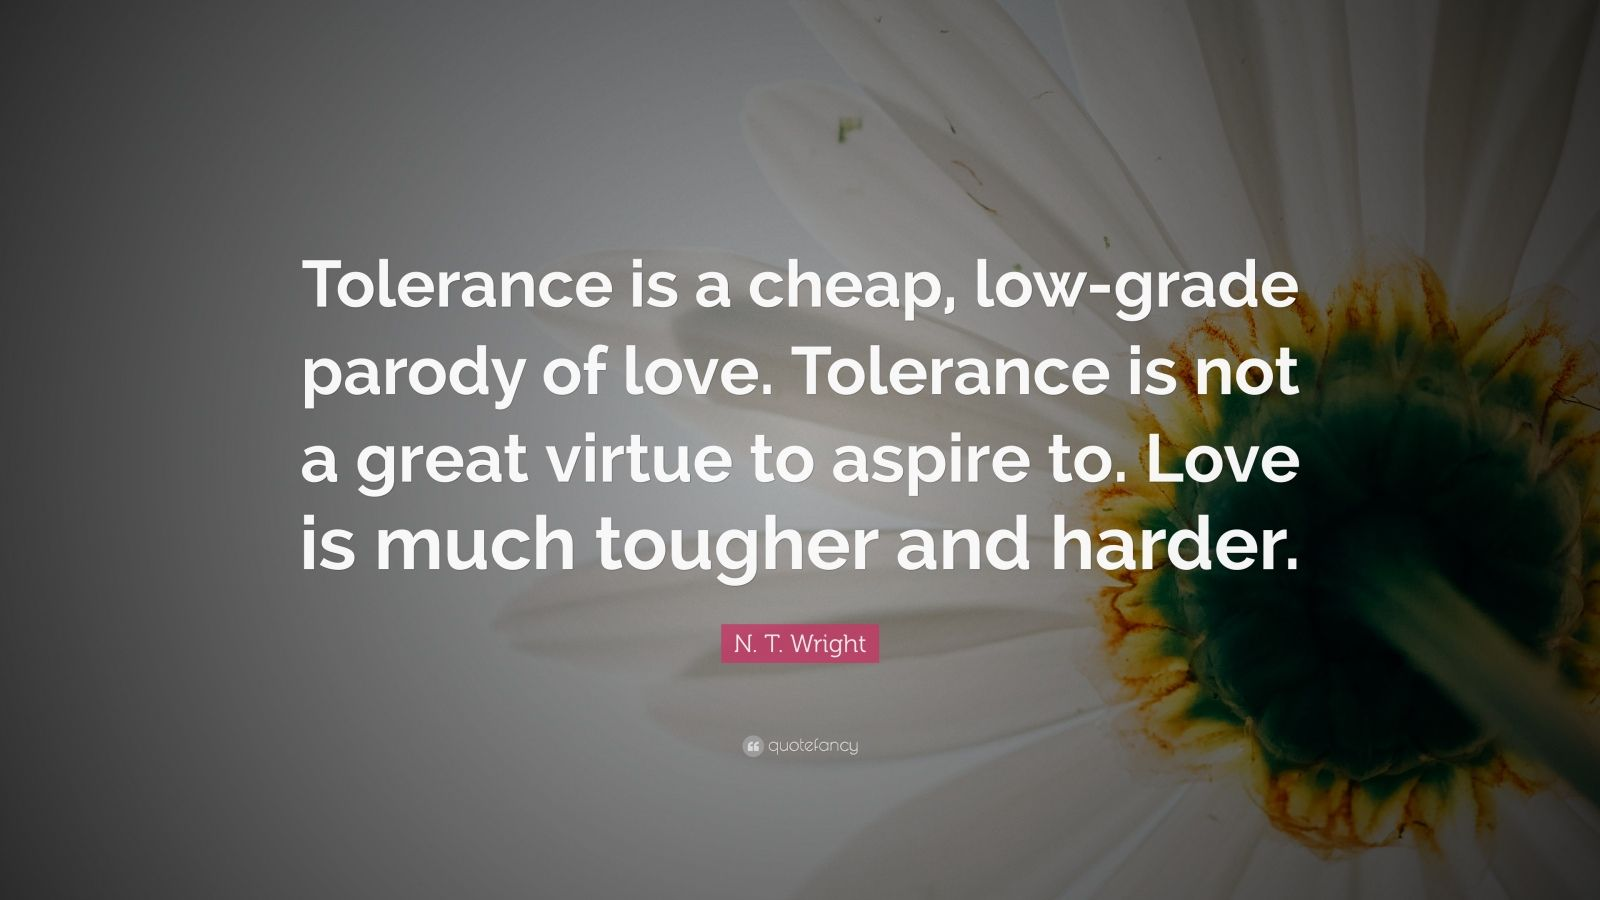 """N. T. Wright Quote: """"Tolerance is a cheap, low-grade parody of love. Tolerance is not a great virtue to aspire to. Love is much tougher and harder."""""""